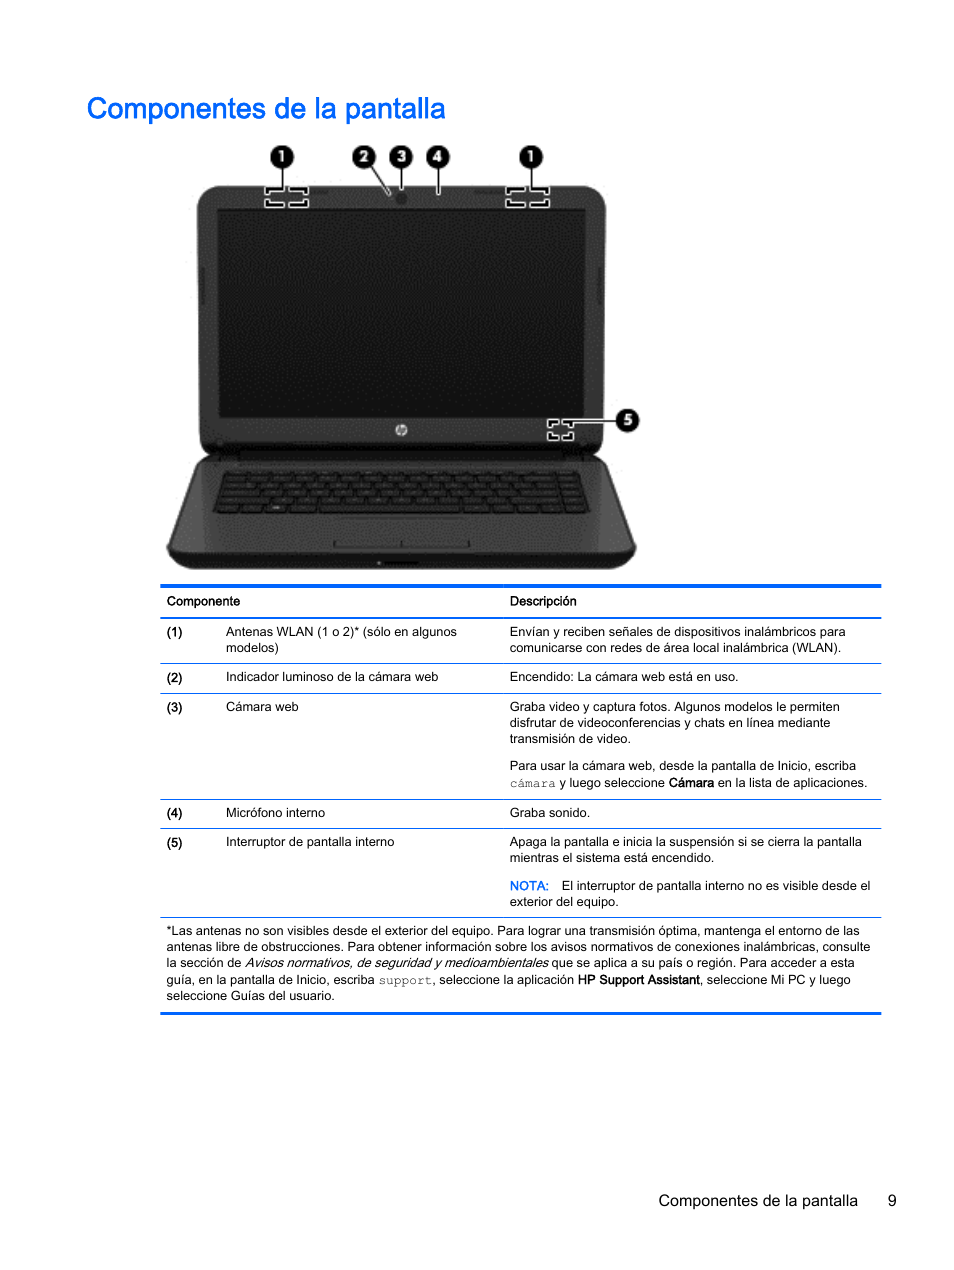 componentes de la pantalla hp pc notebook hp 245 g3 manual del rh pdfmanuales com manual do notebook hp manual for hp notebook